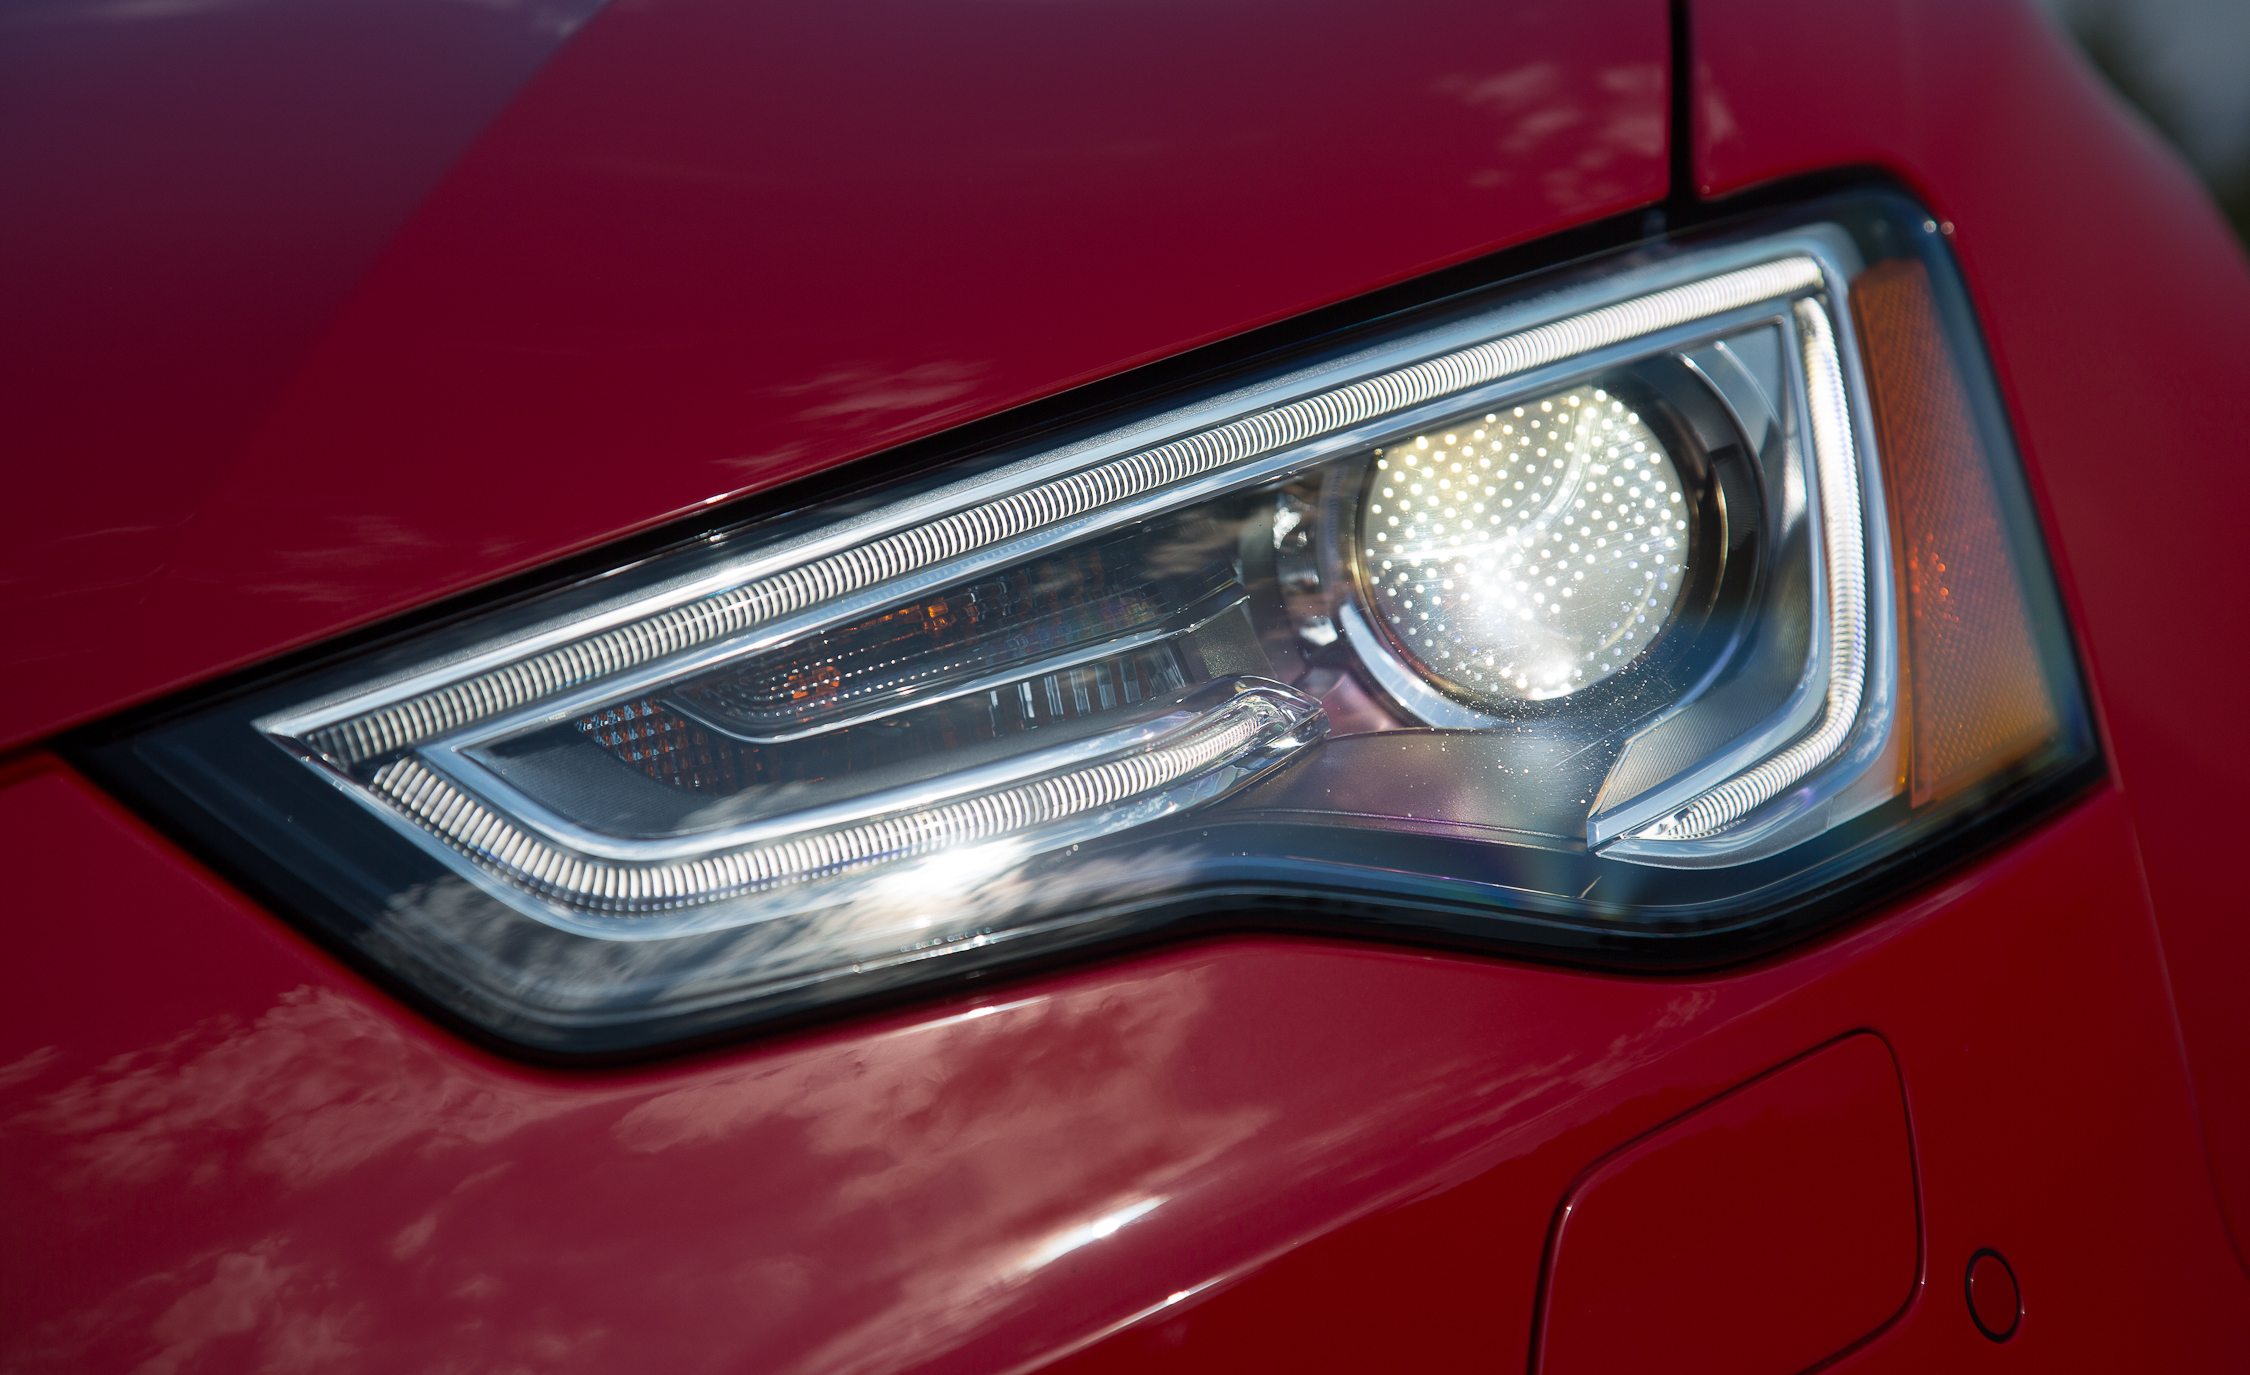 2013 Audi RS 5 Exterior View Headlight (Photo 13 of 41)